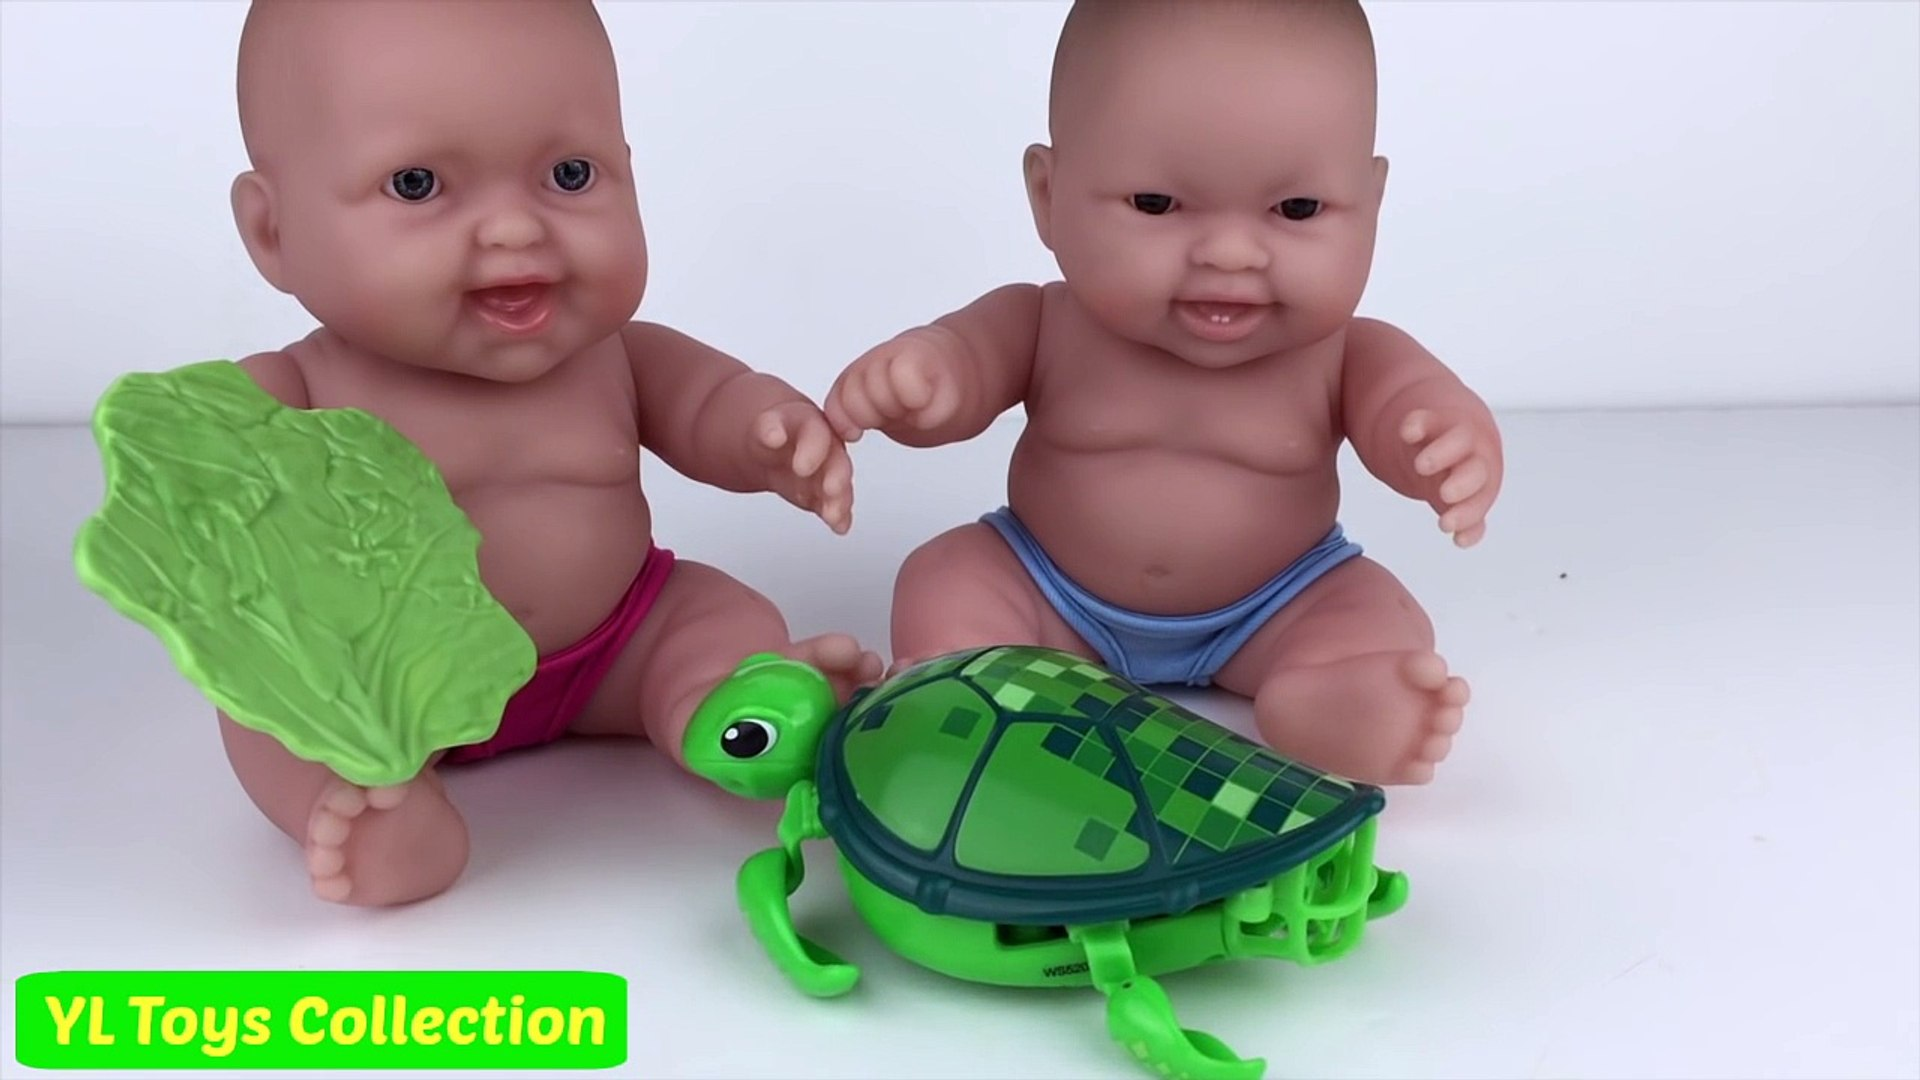 Baby Doll # 36 - Baby have a Little Live Pets by YL Toys Collection